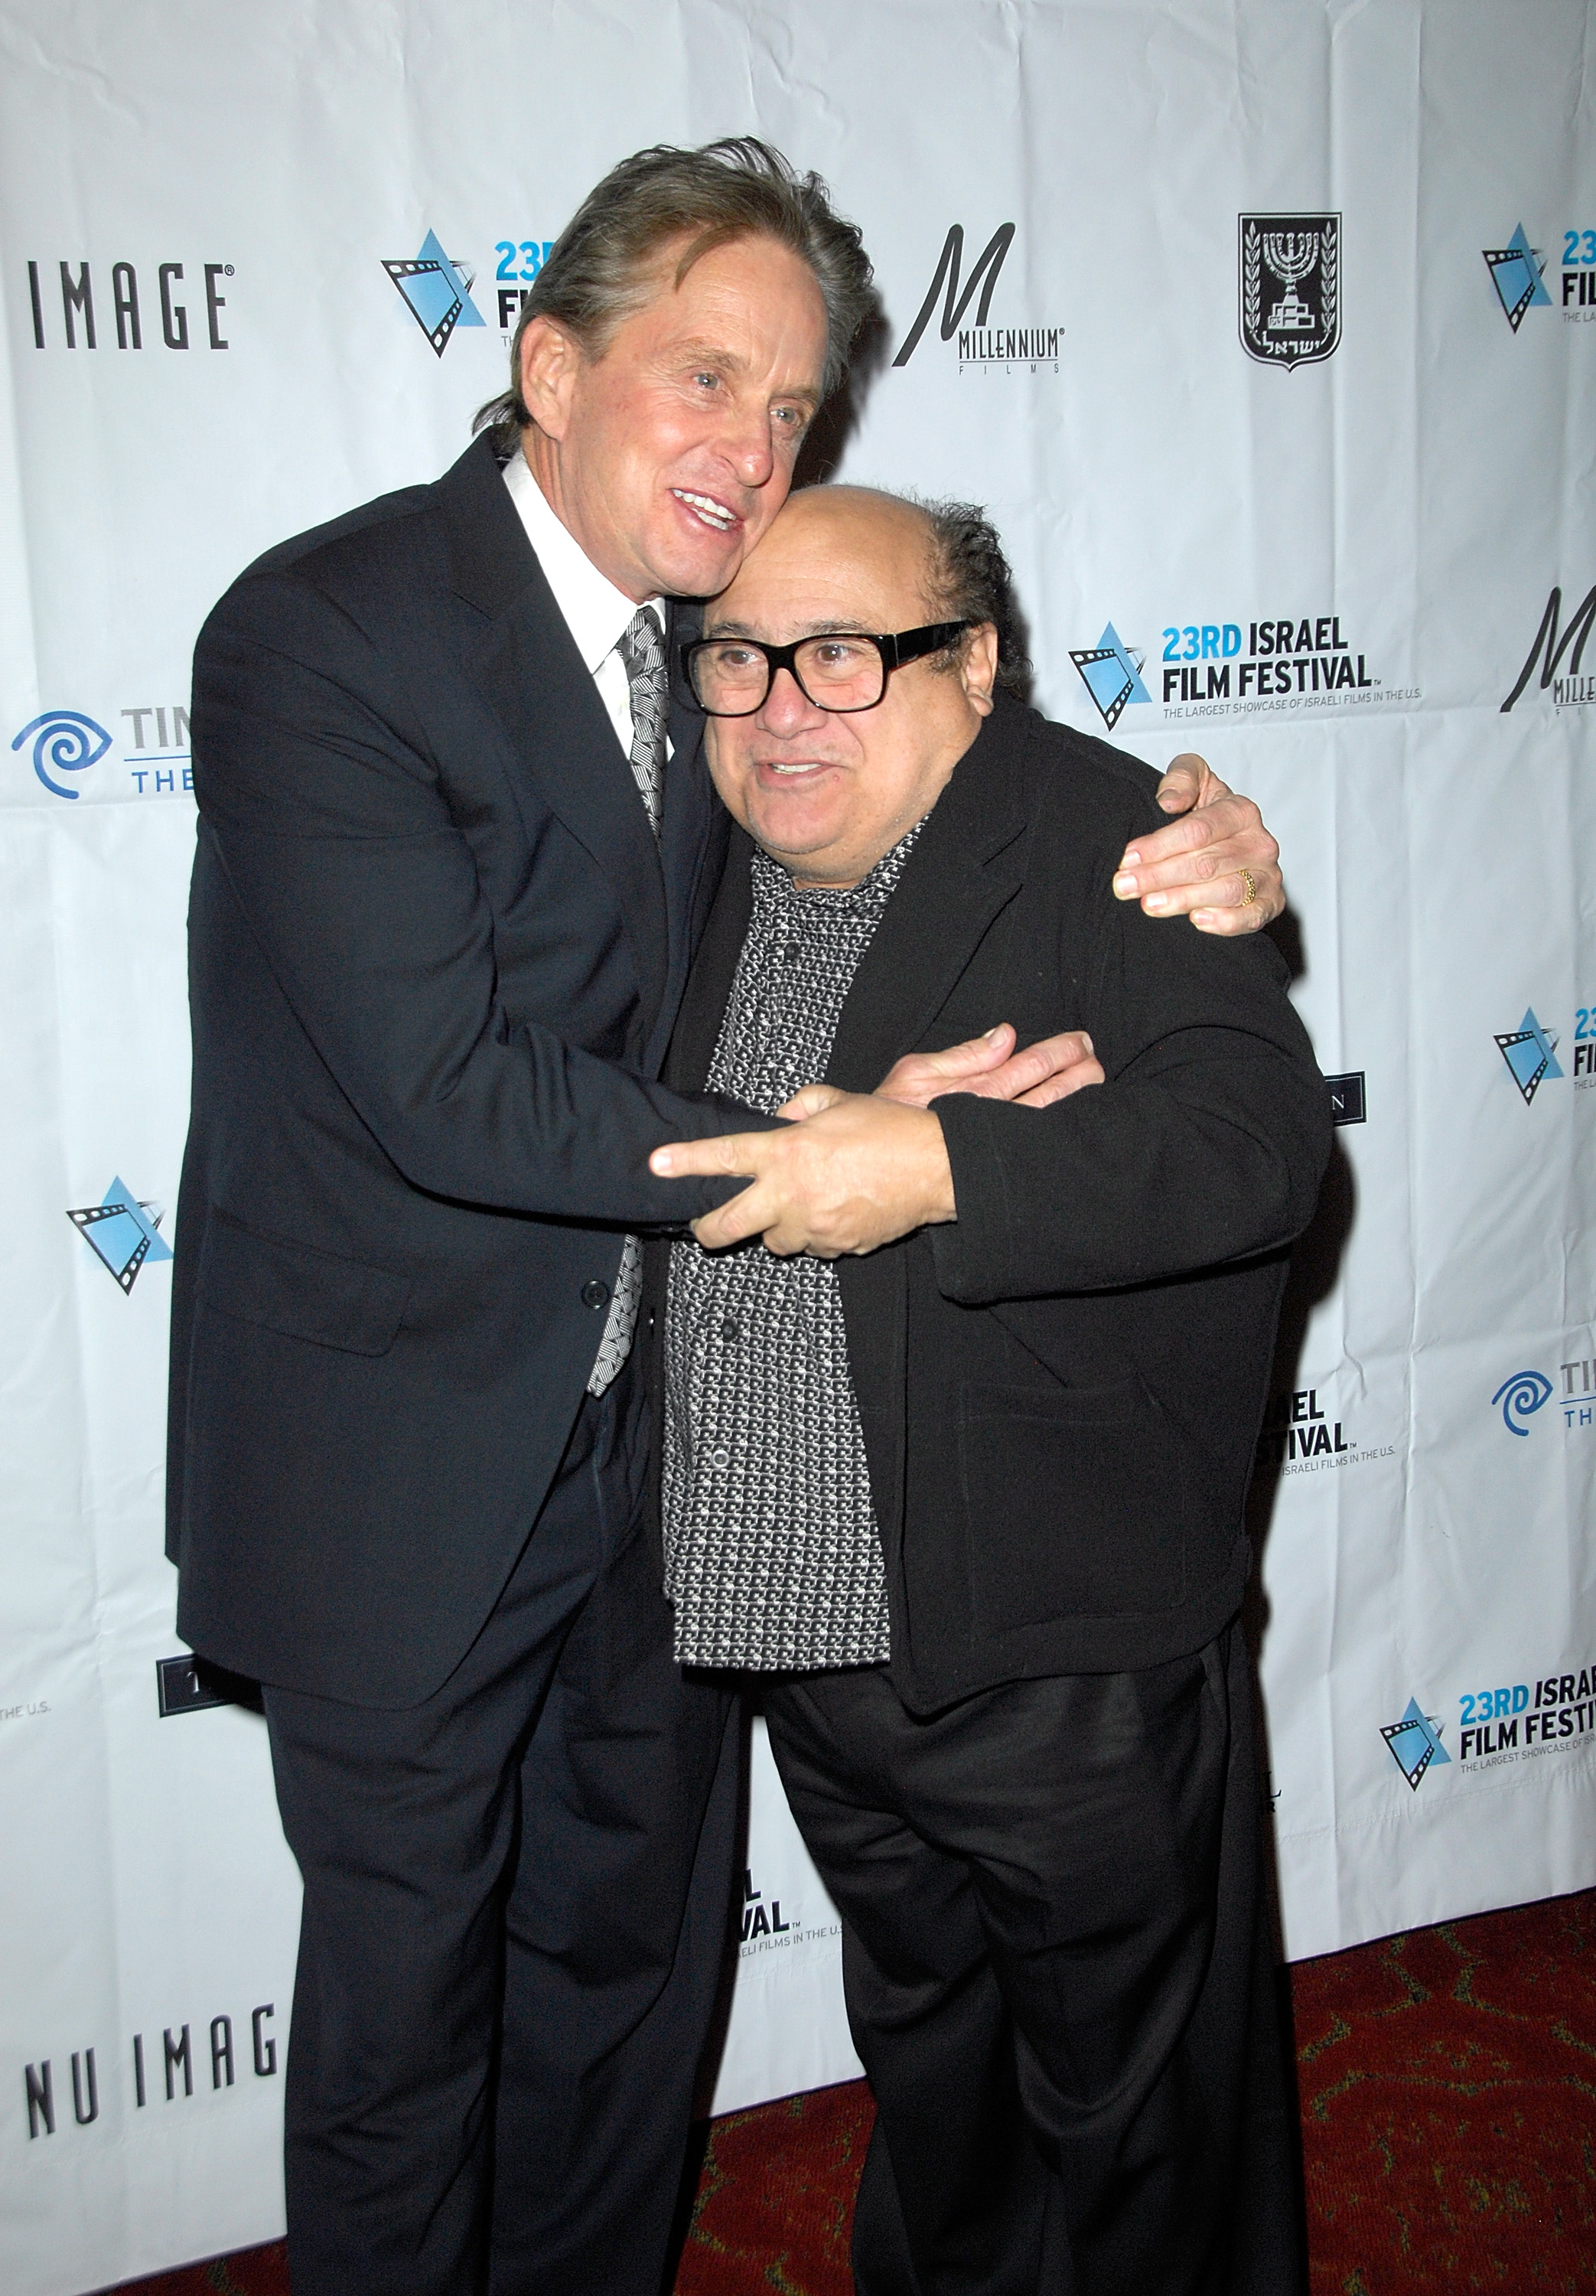 Danny Devito Honored At The 23rd Annual Israel Film Festival